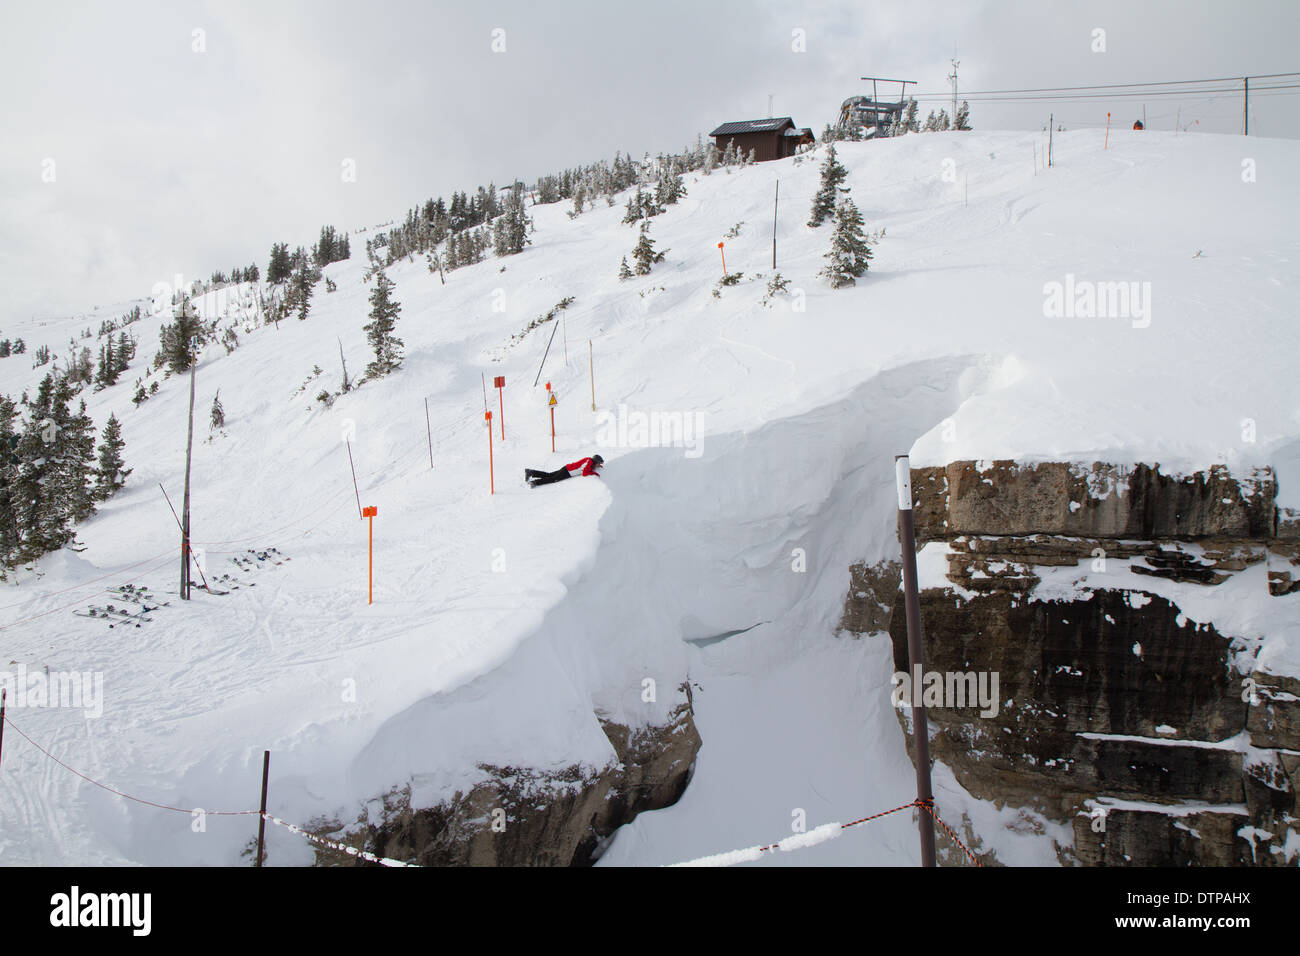 Skiers looking down corbet's couloir, a double black diamond skirun at Jackson Hole, WY - Stock Image